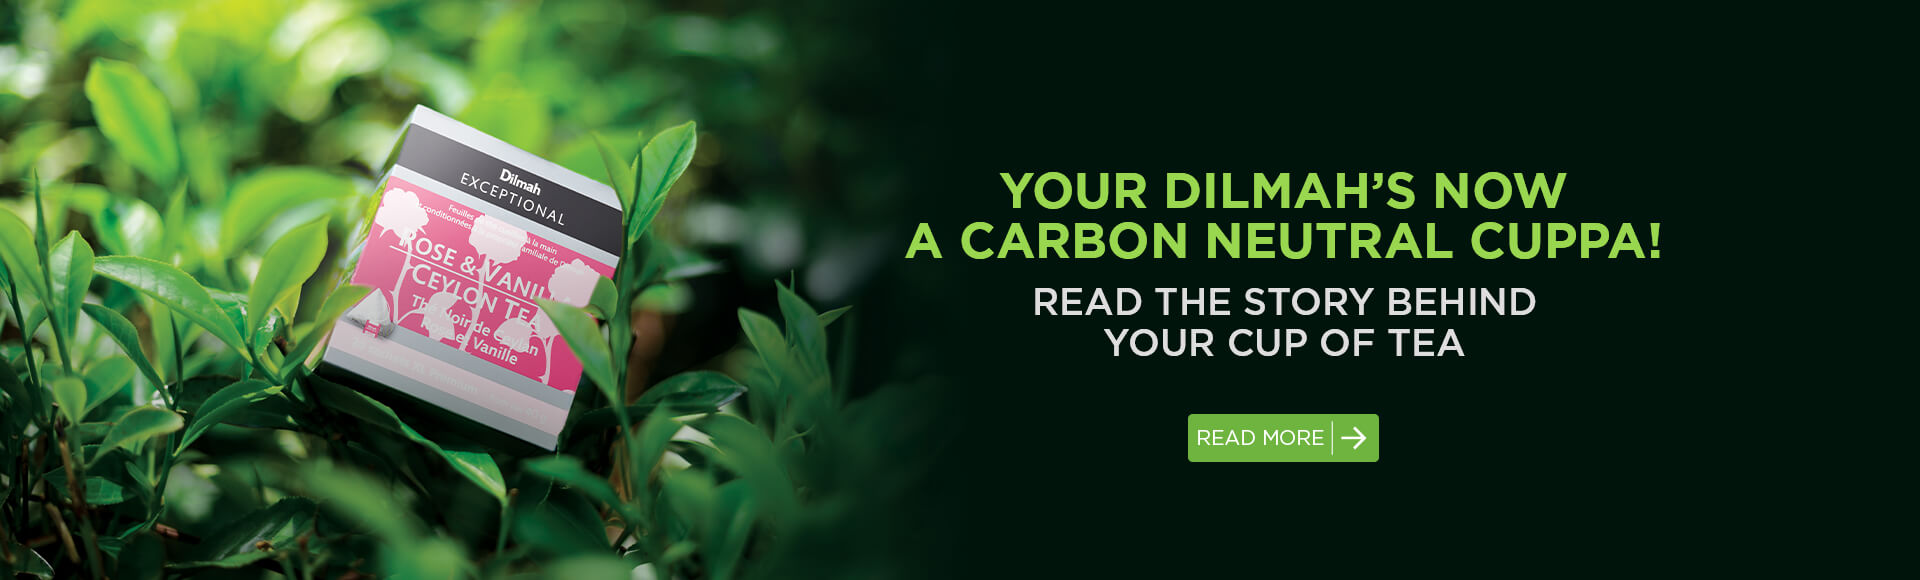 Dilmah carbon neutral book banner